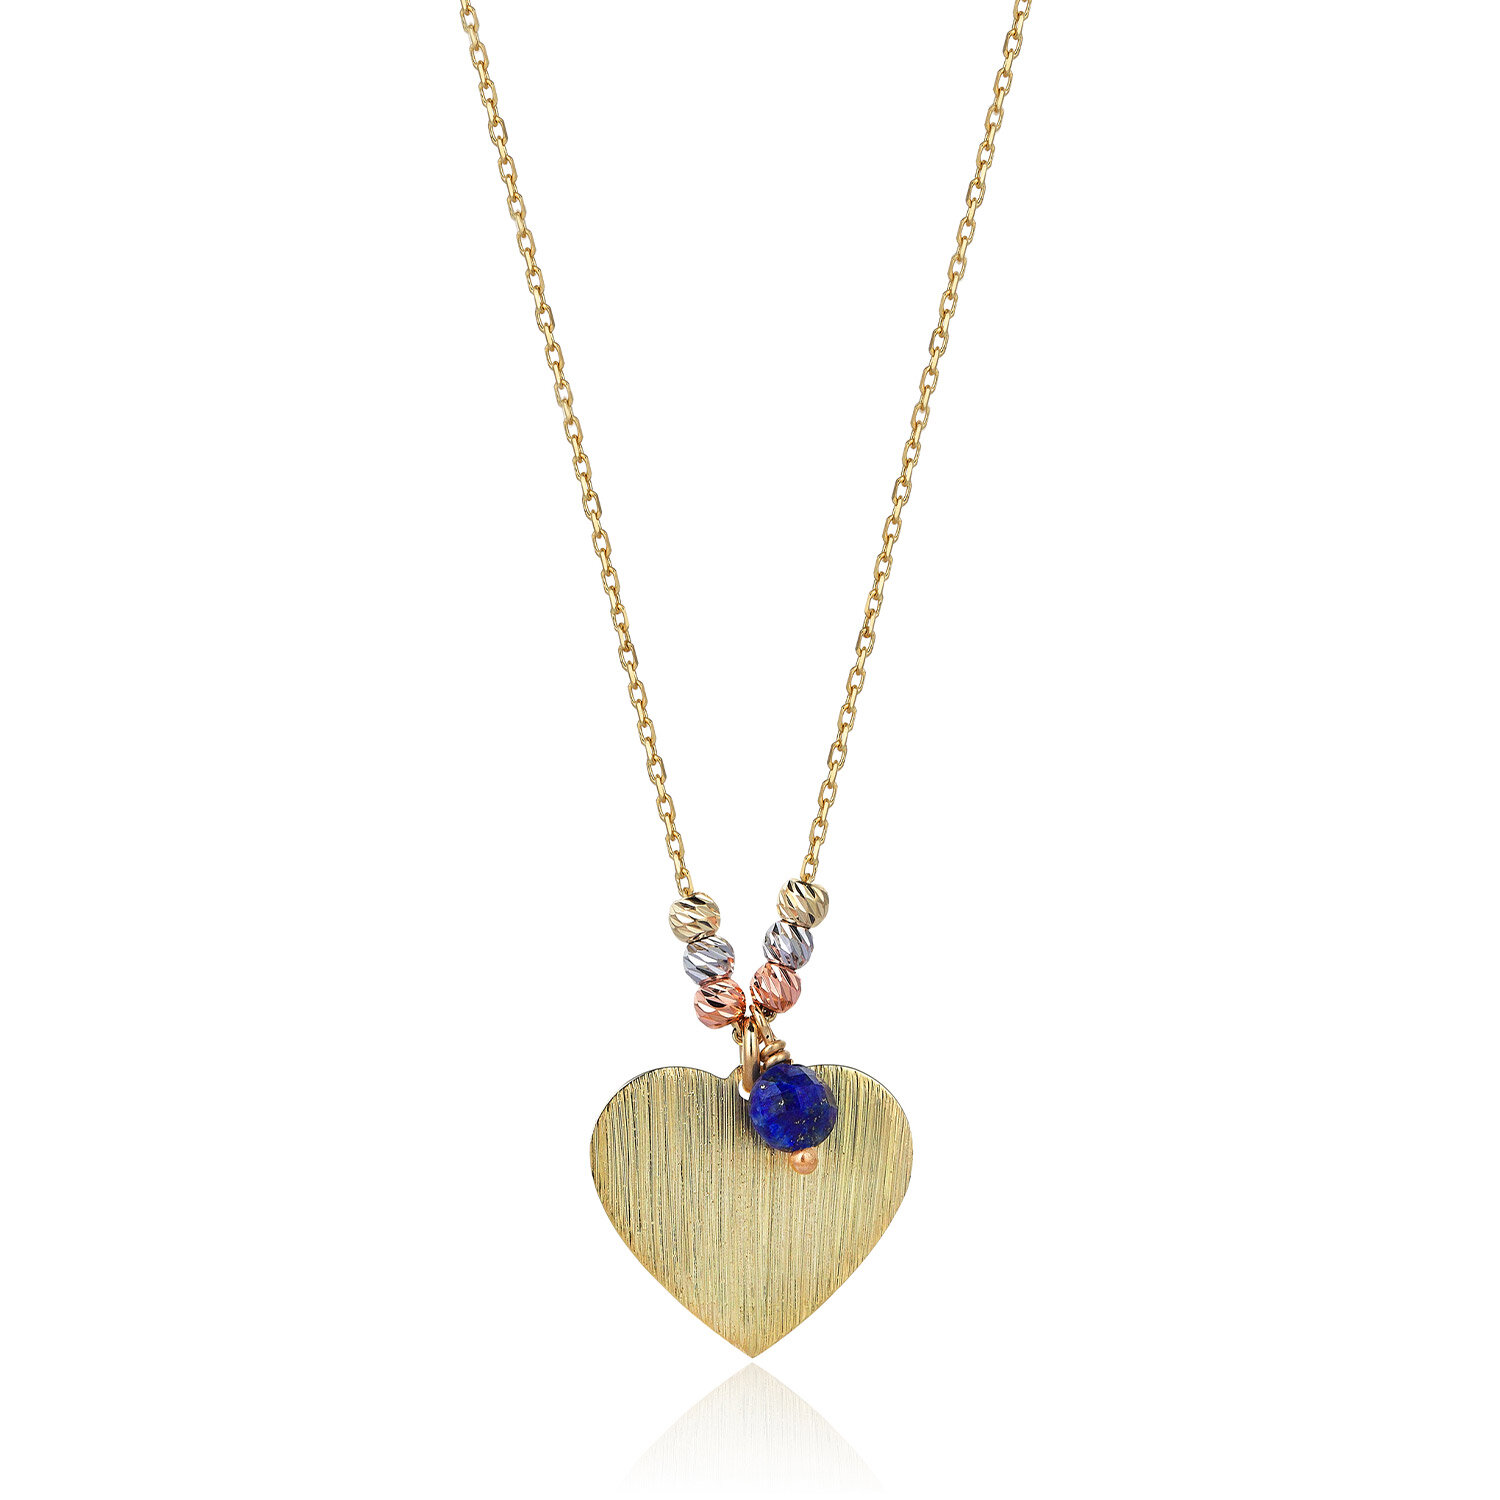 Heart Gold Necklace with Lapis Stone- Marin